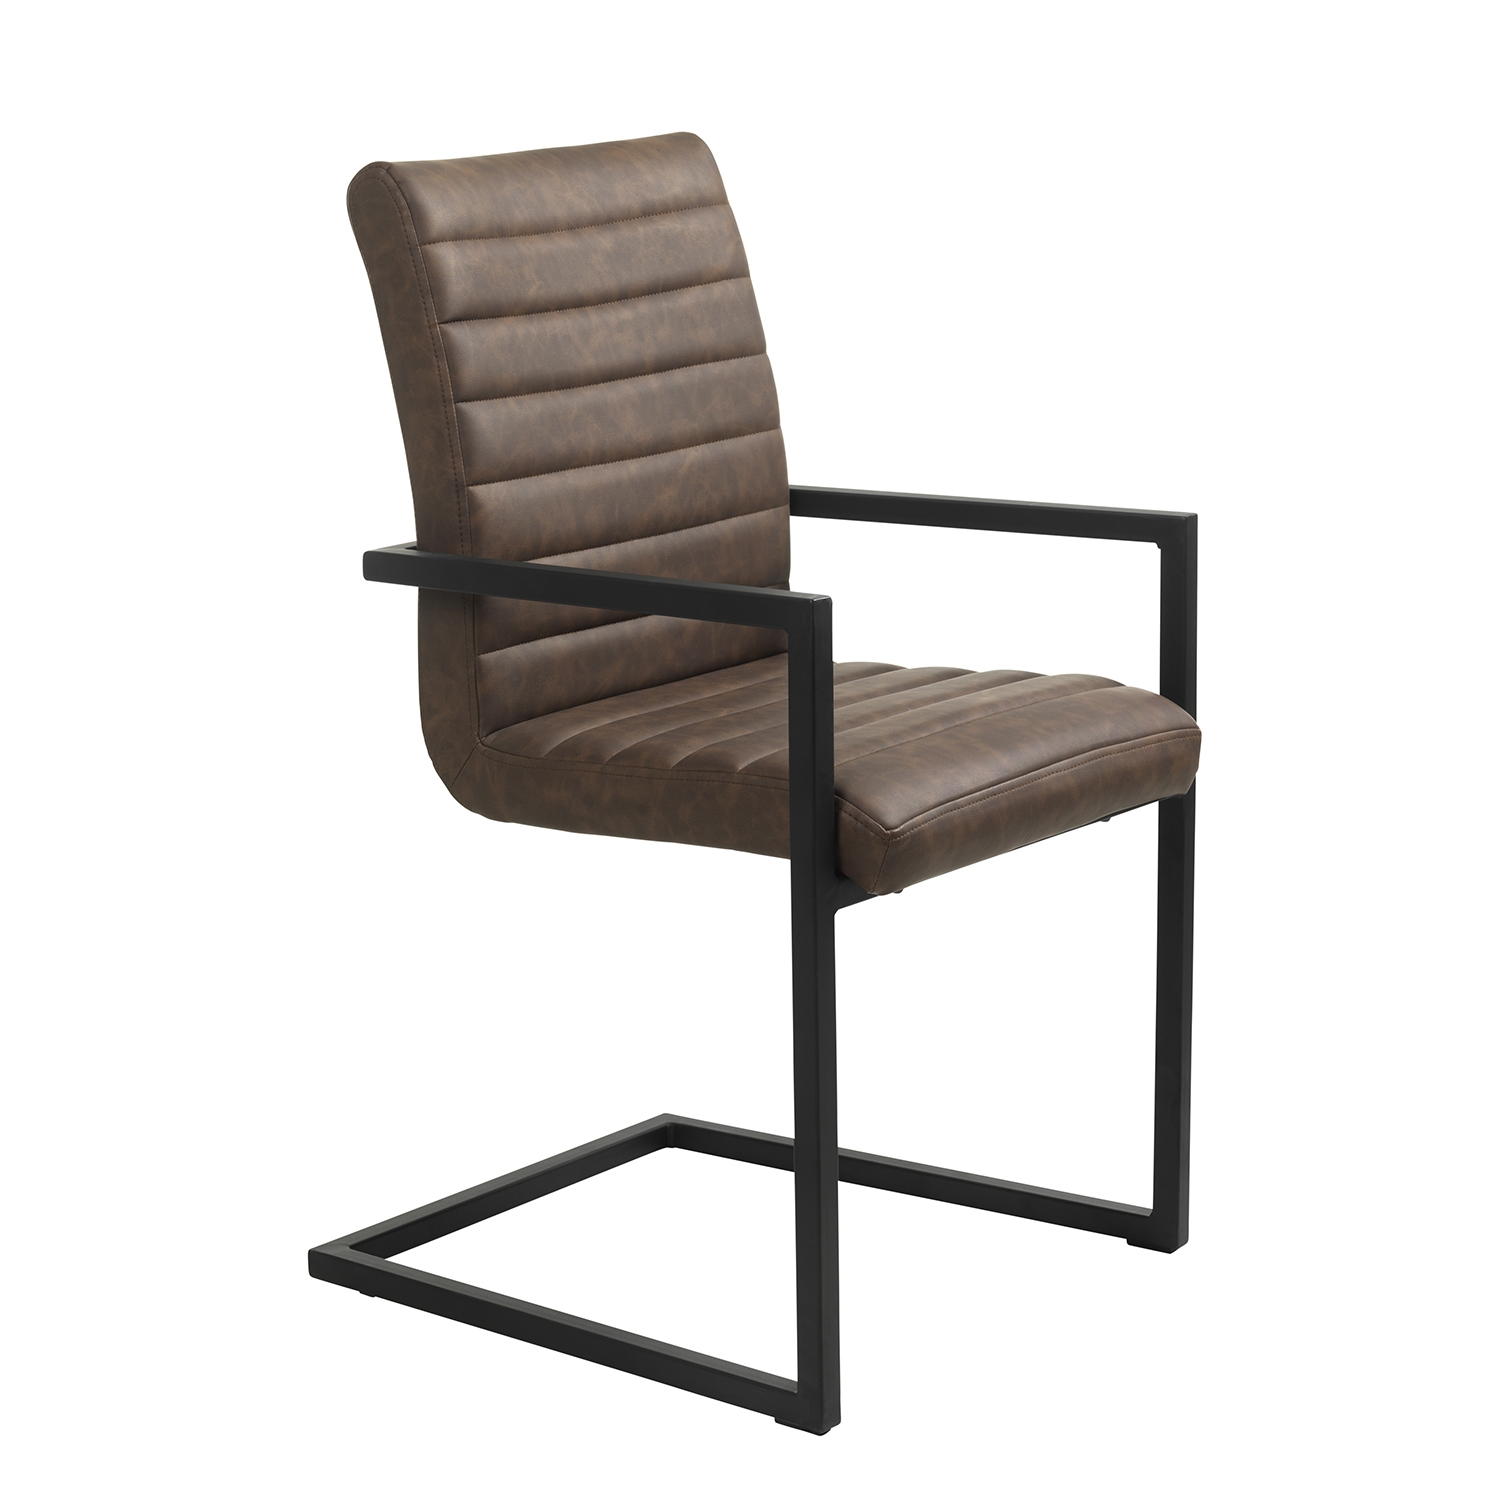 Image of Casa Melbourne Dining Armchair